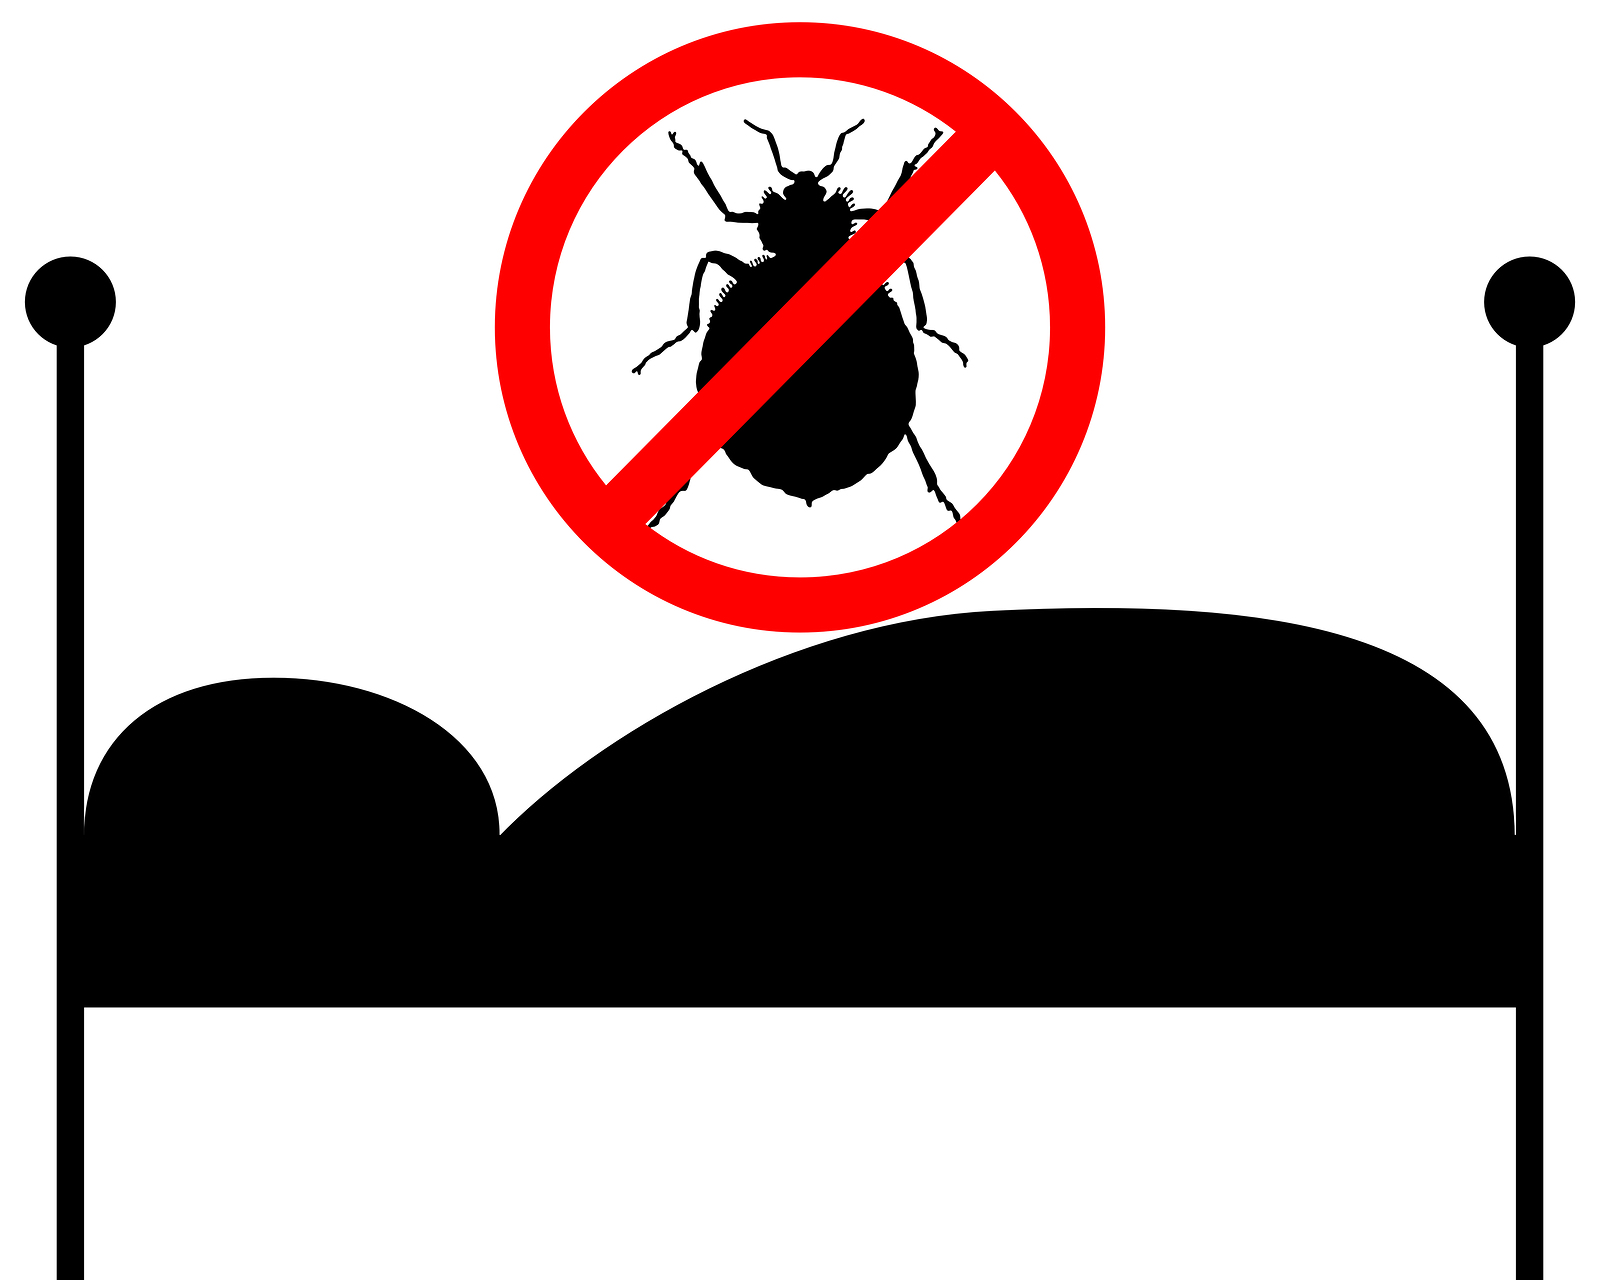 Bed Bugs No - The Dangers of DIY: Why You Shouldn't Treat Bed Bugs Yourself